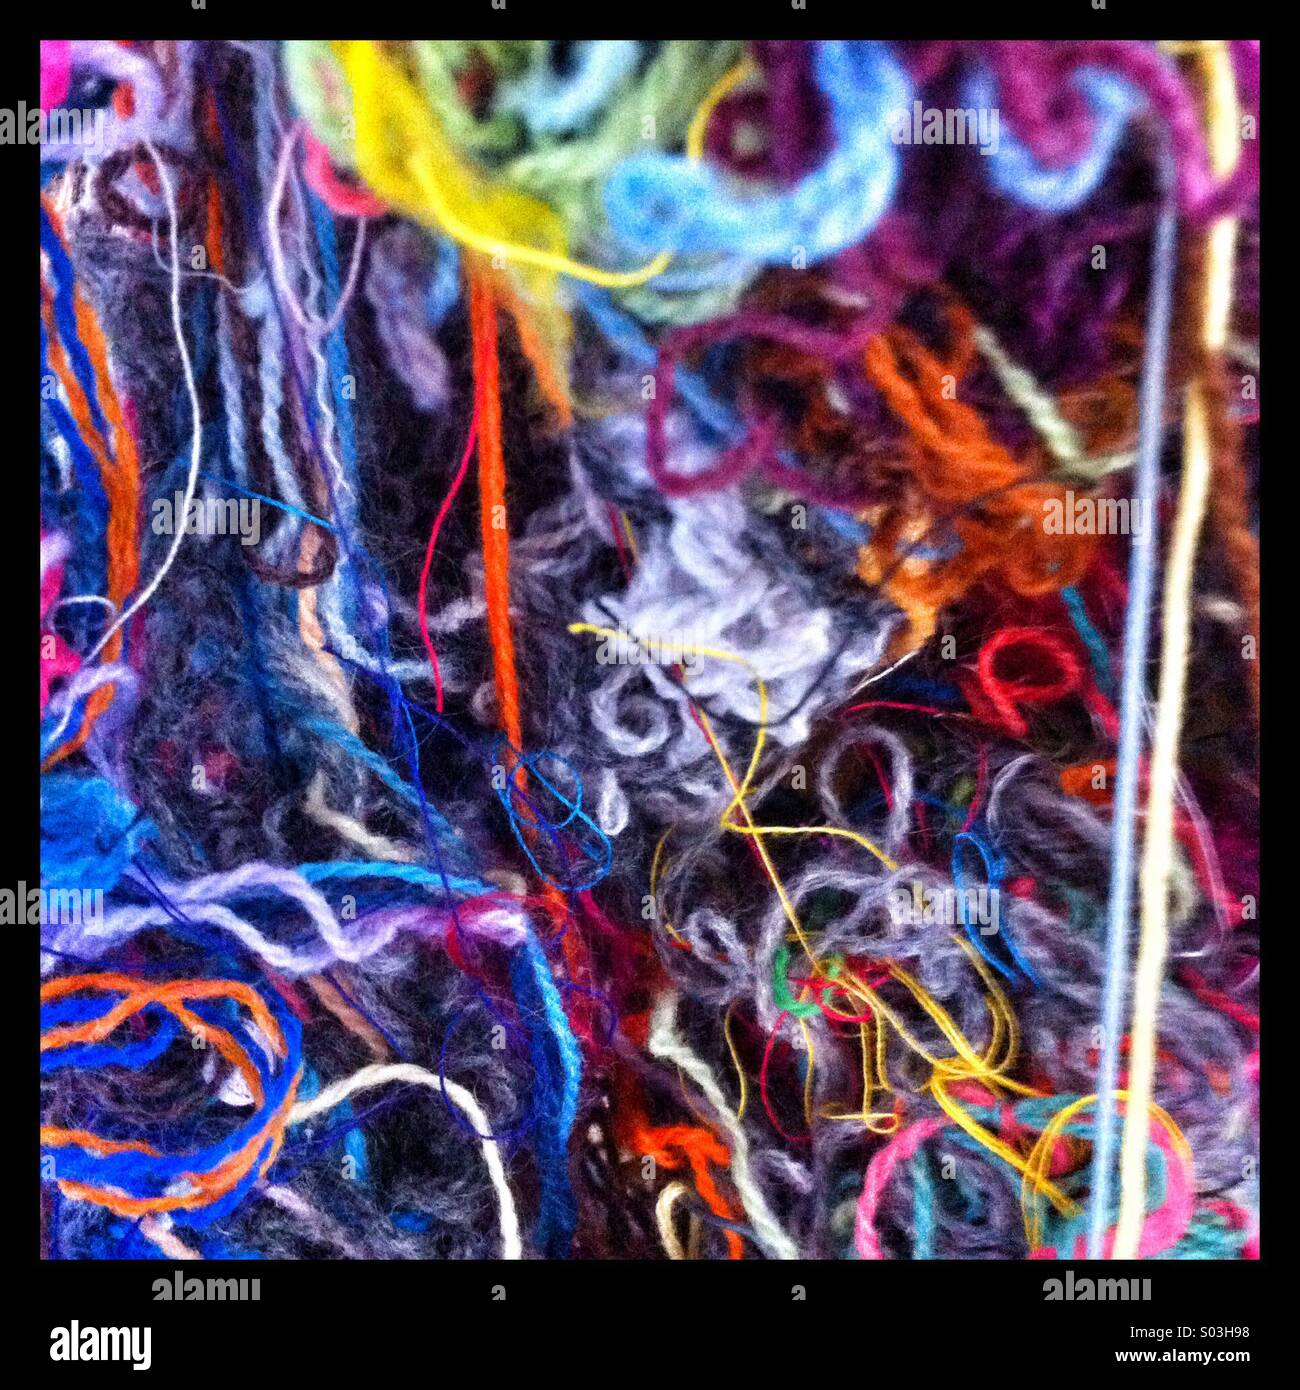 A tangle of wool and threads - Stock Image